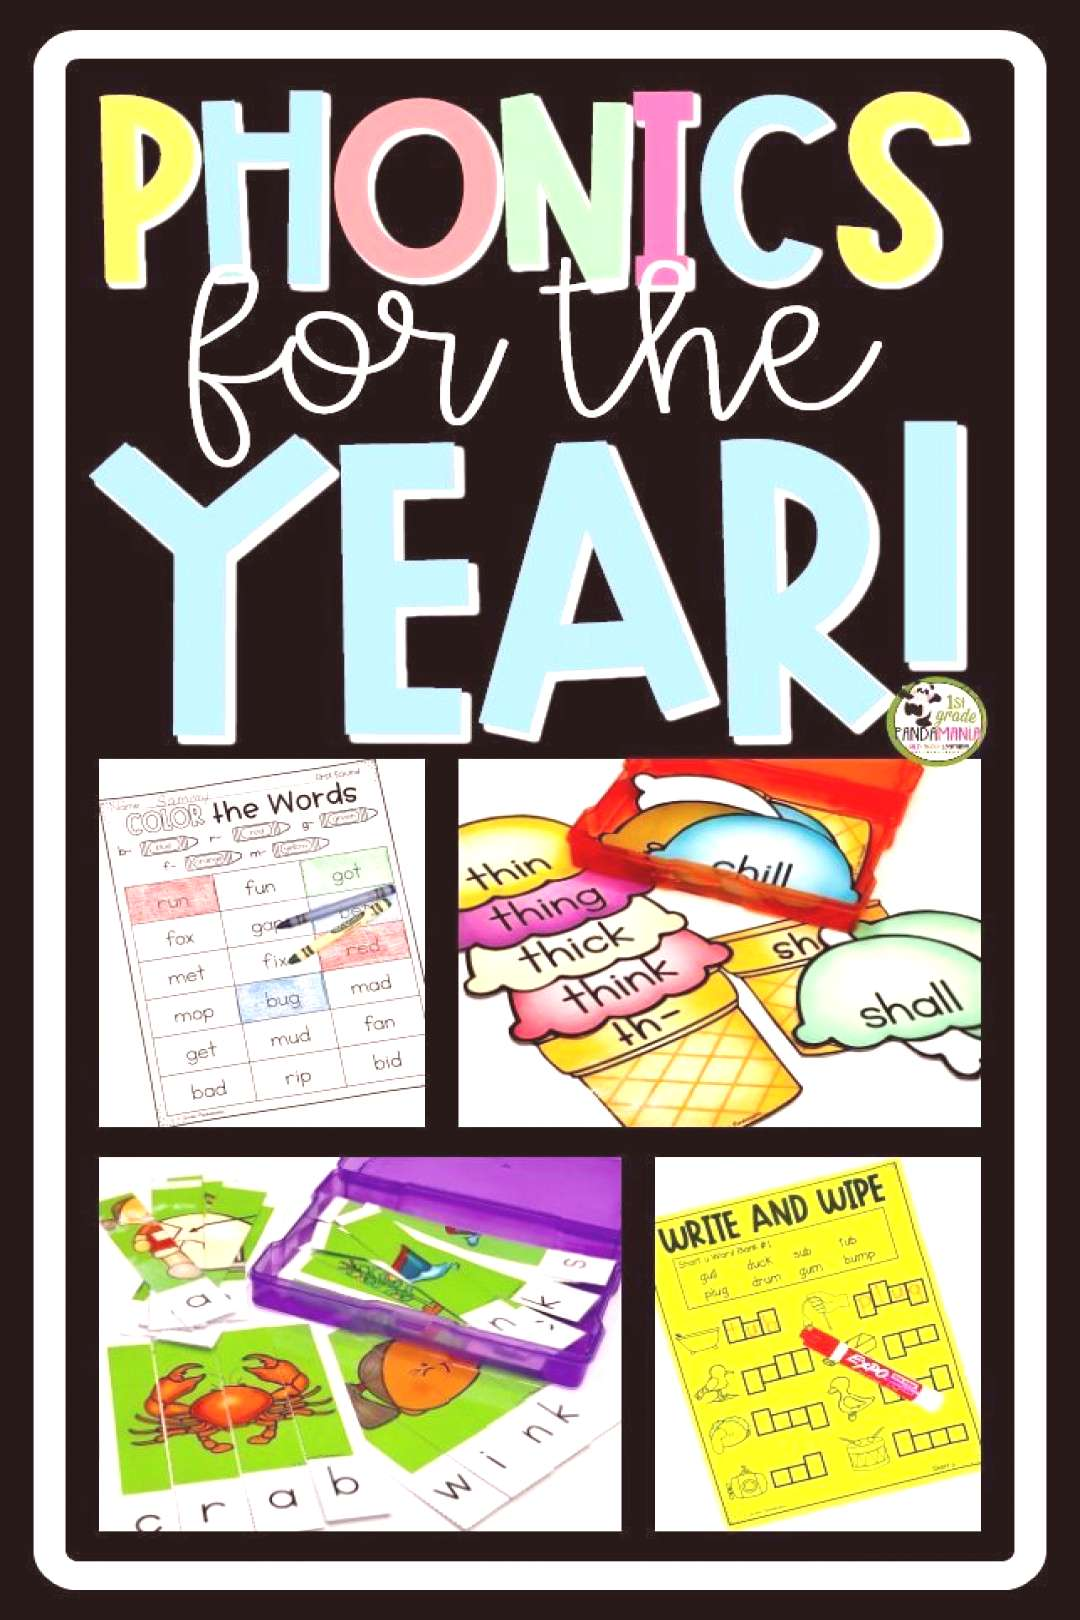 Targeted Phonics Must Dos and May Dos for the Year! -